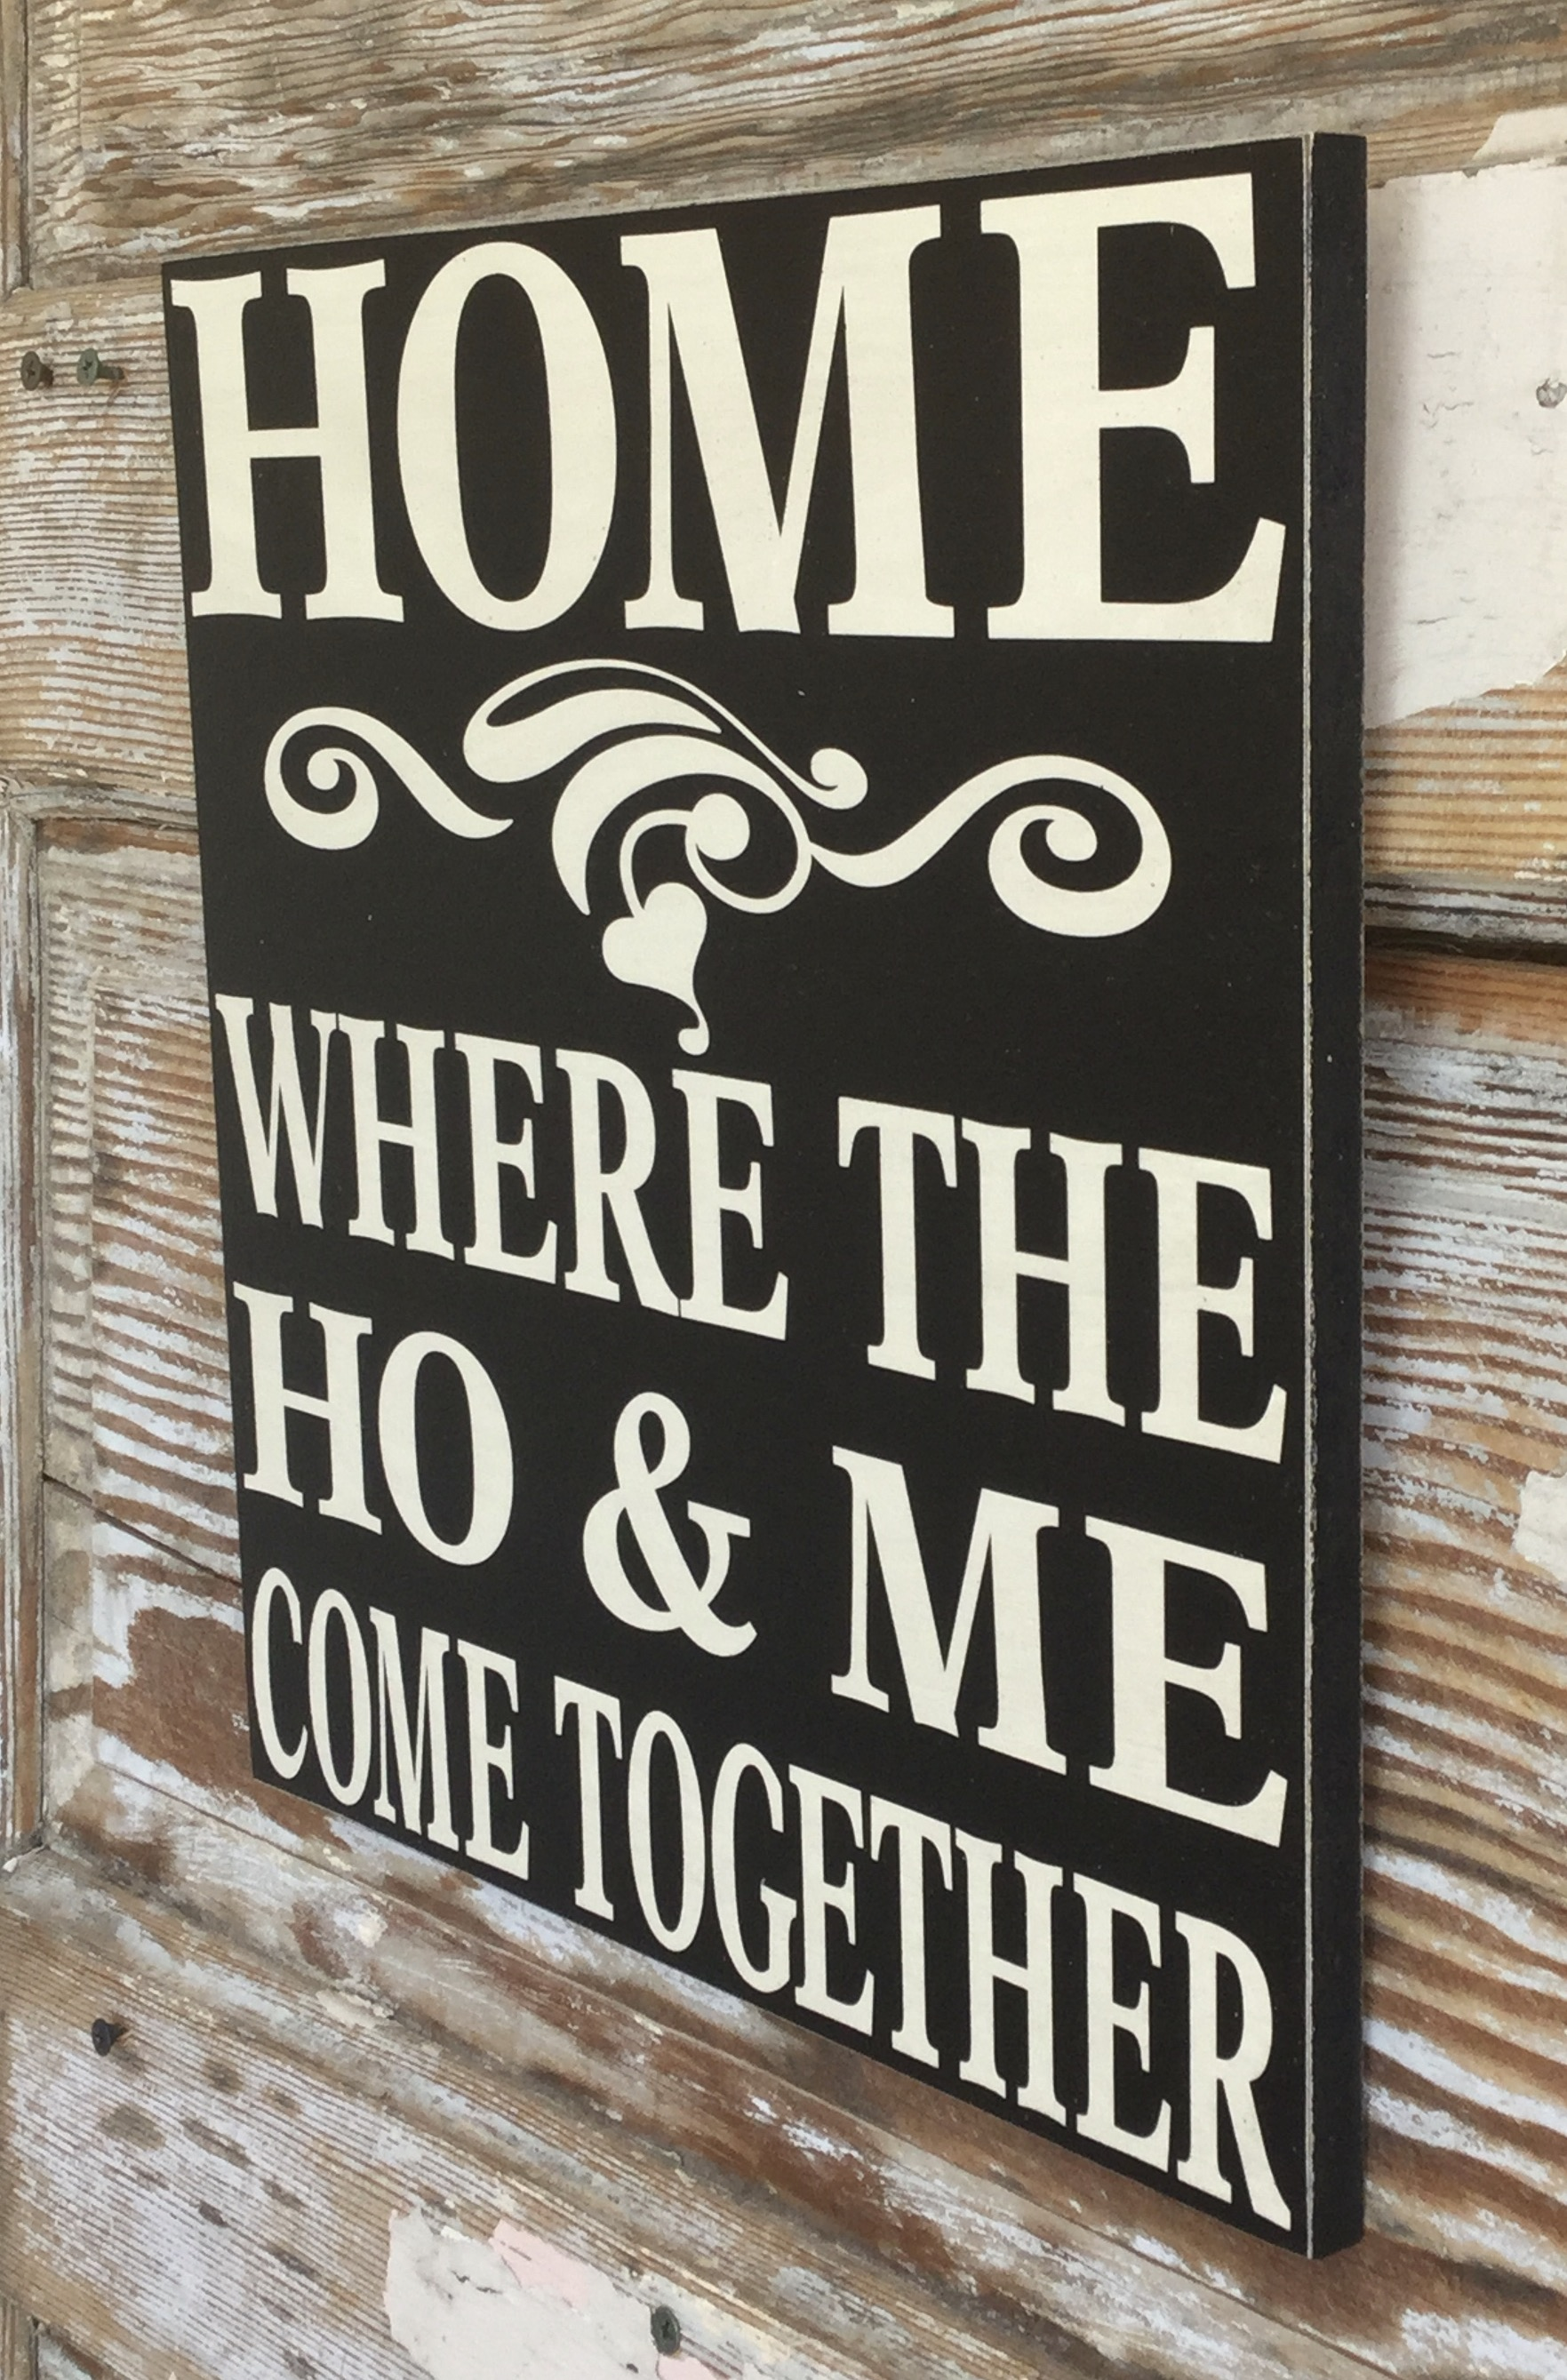 Www Home Home Where The Ho And Me Come Together Funny Wood Sign